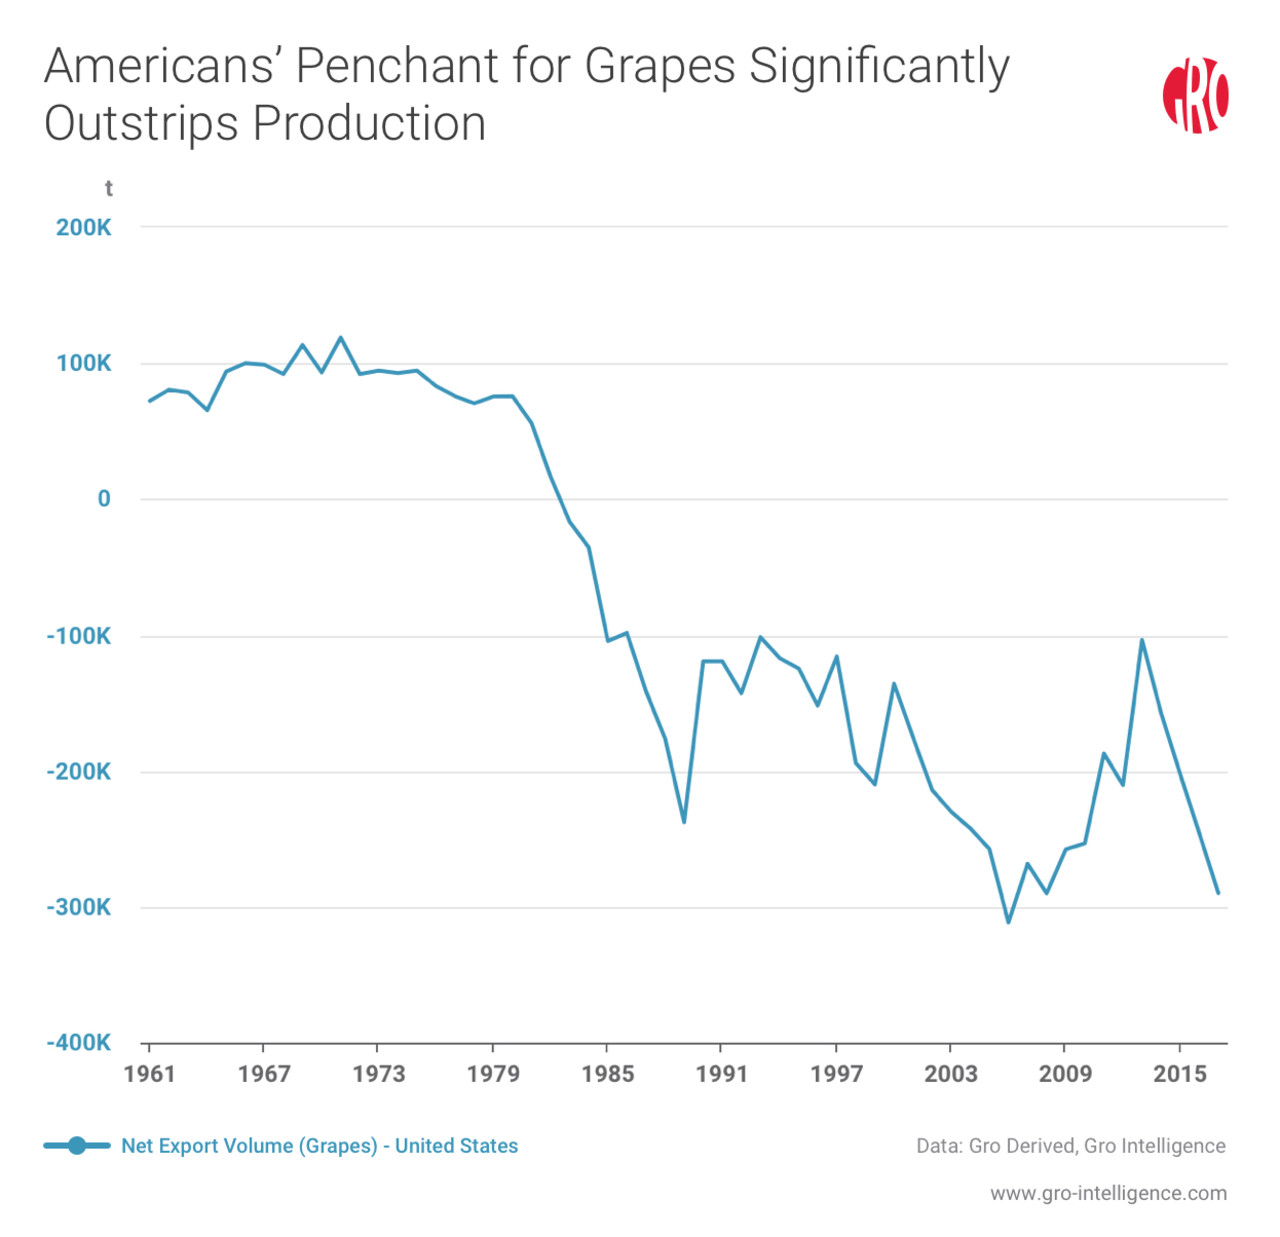 Americans' Penchant for Grapes Significantly Outstrips Production